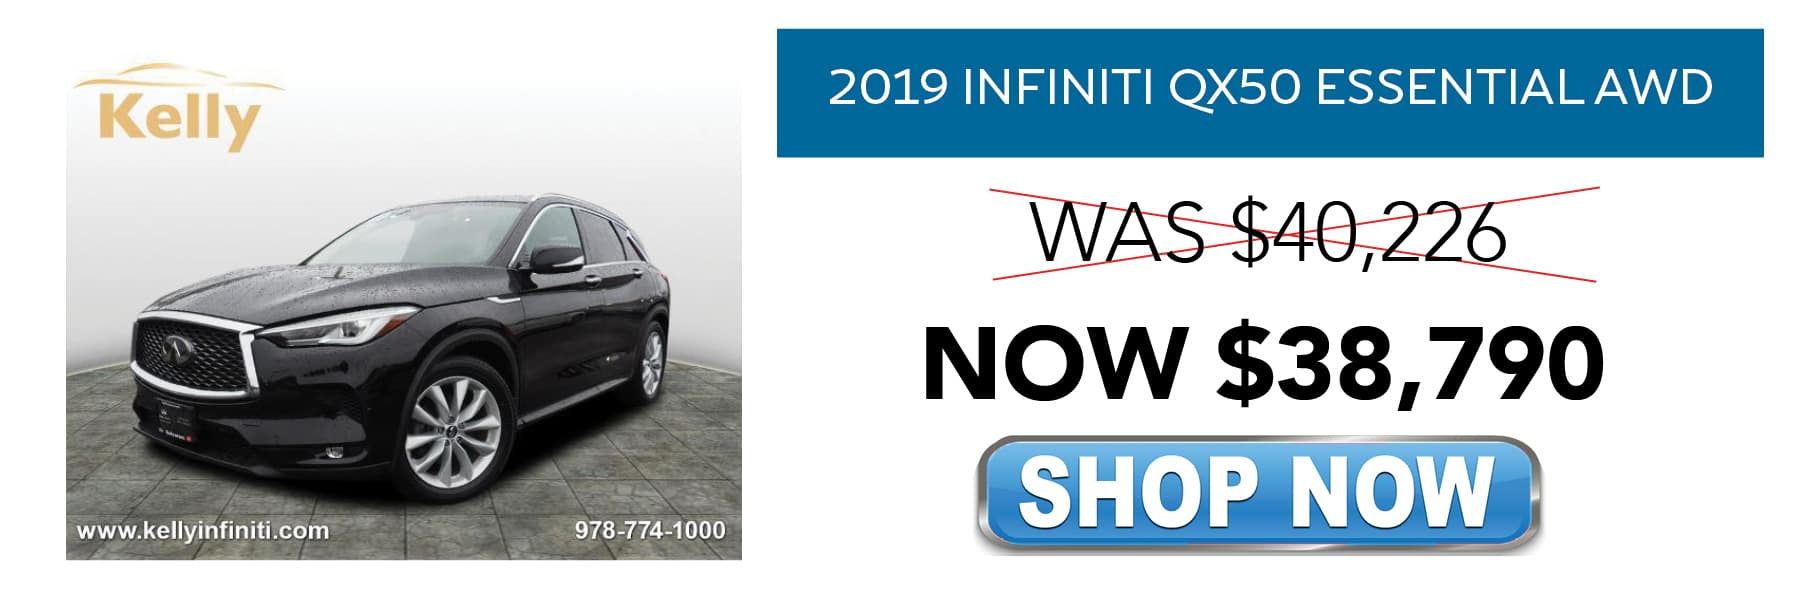 Certified Pre-Owned 2019 INFINITI QX50 Essential Now $38,790